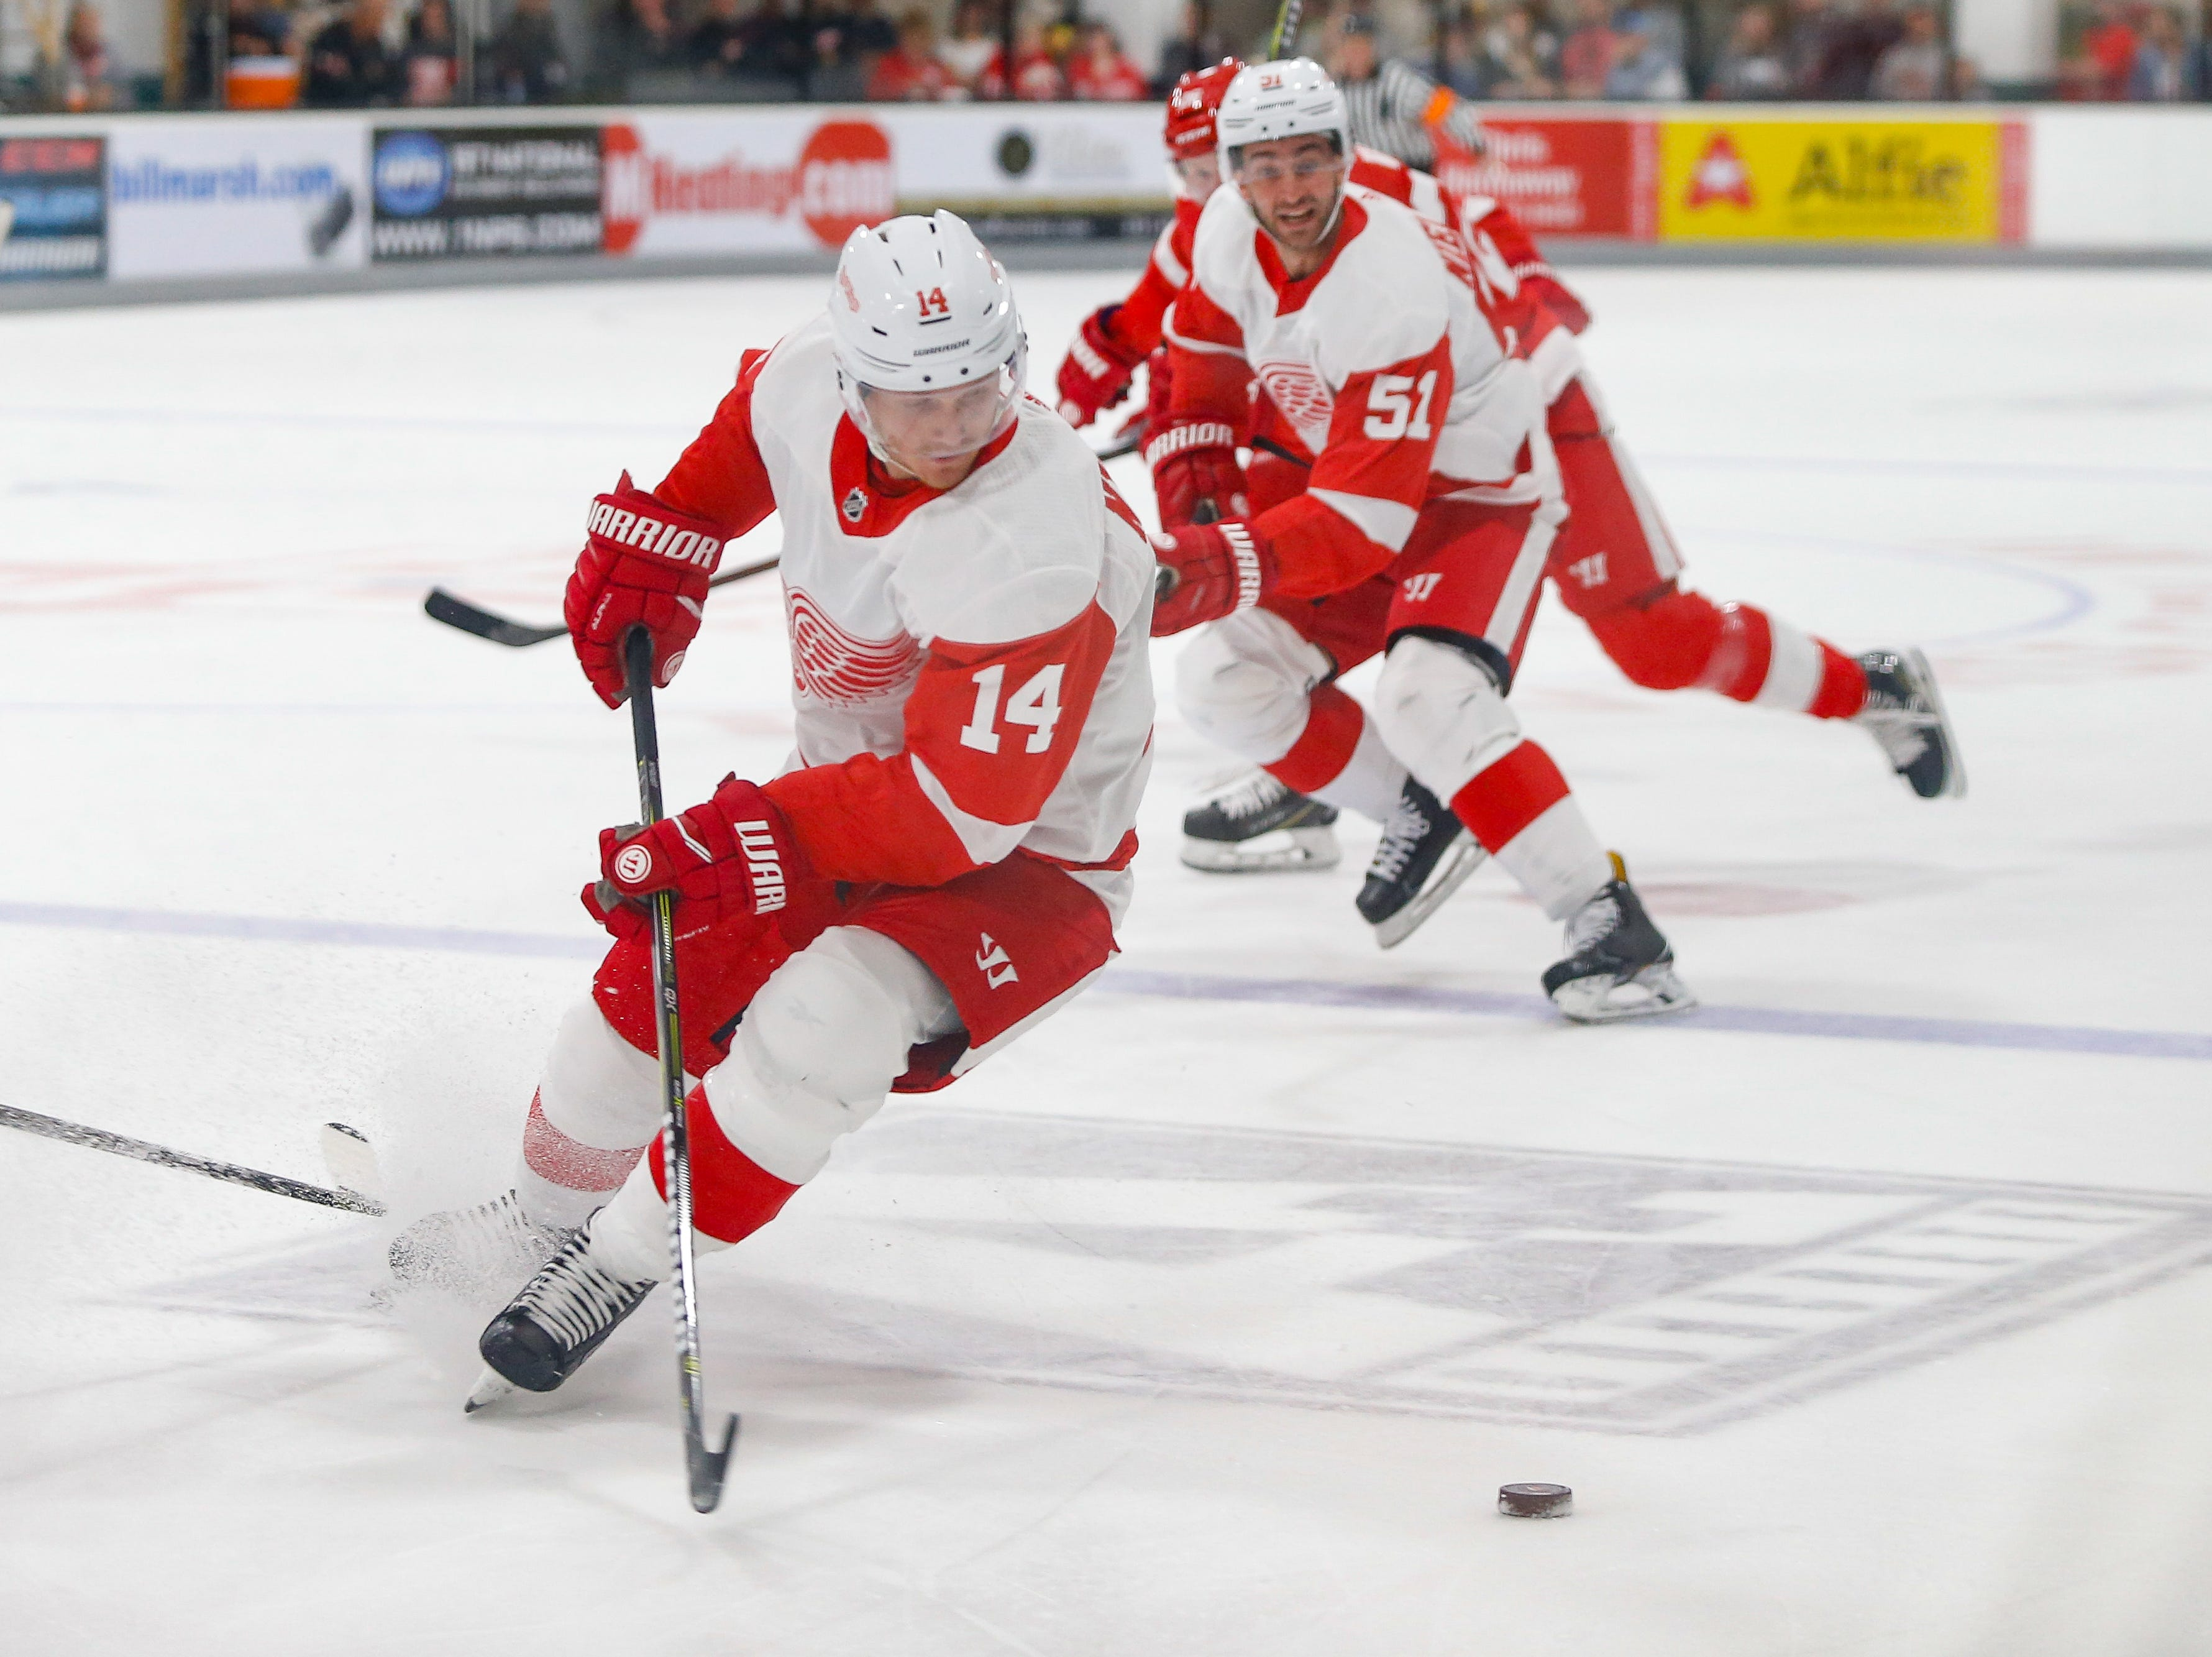 Forward Gustav Nyquist (14) turns to collect the puck as Frans Nielsen (51) looks on.